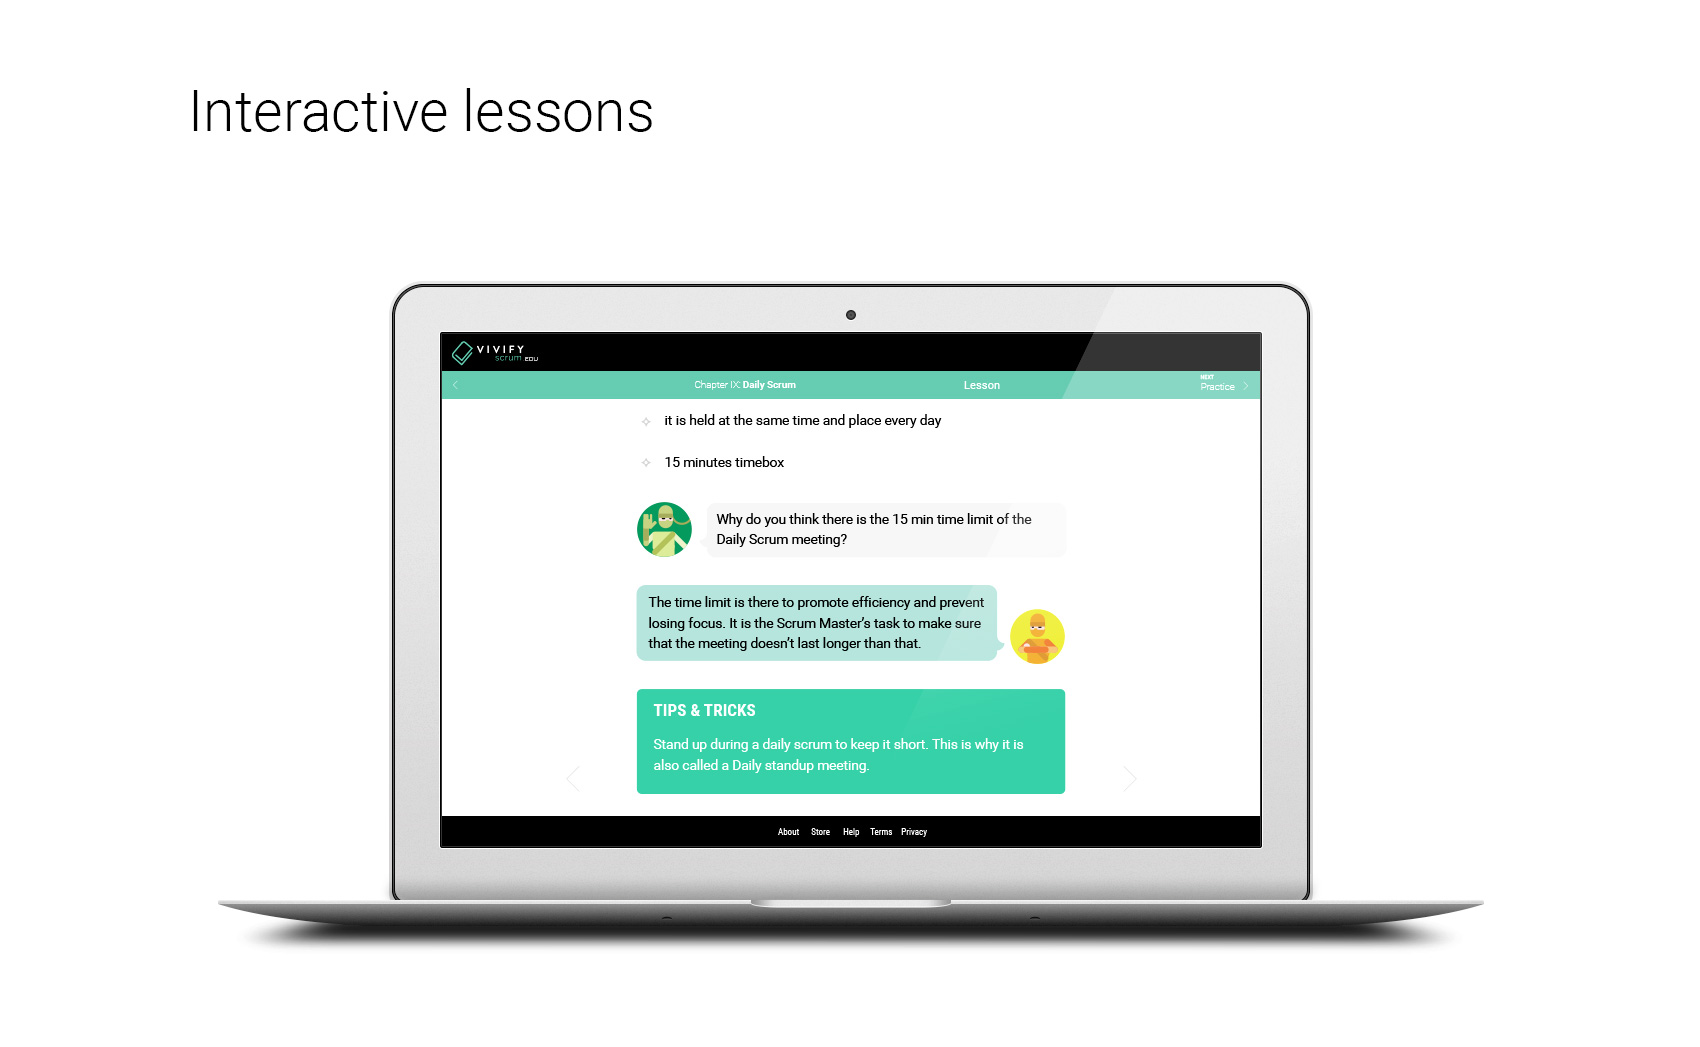 VivifyScrum EDU interactive lessons